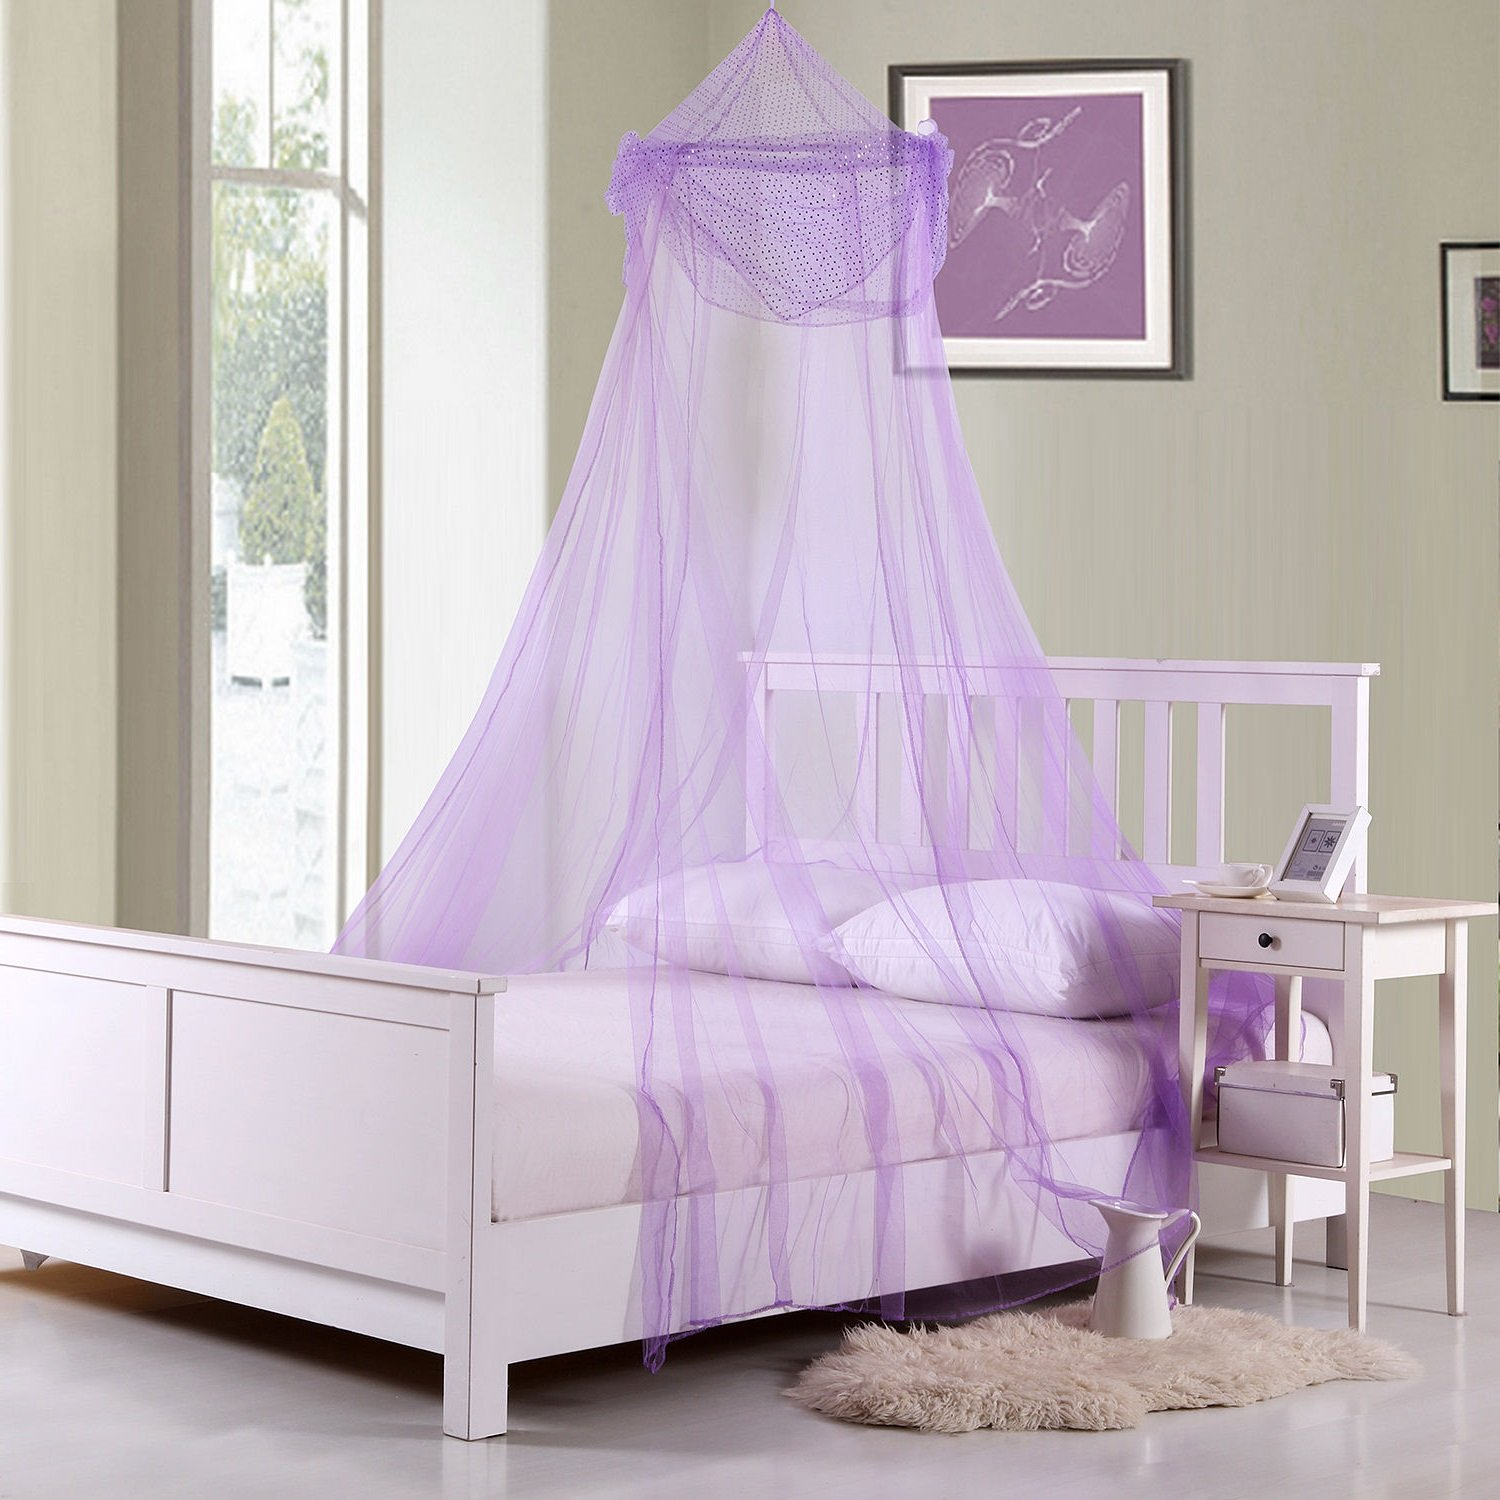 Collapsible Purple Sheer Bed Canopy For Kids Room Decor For Boys, Teen Girl Room Decor